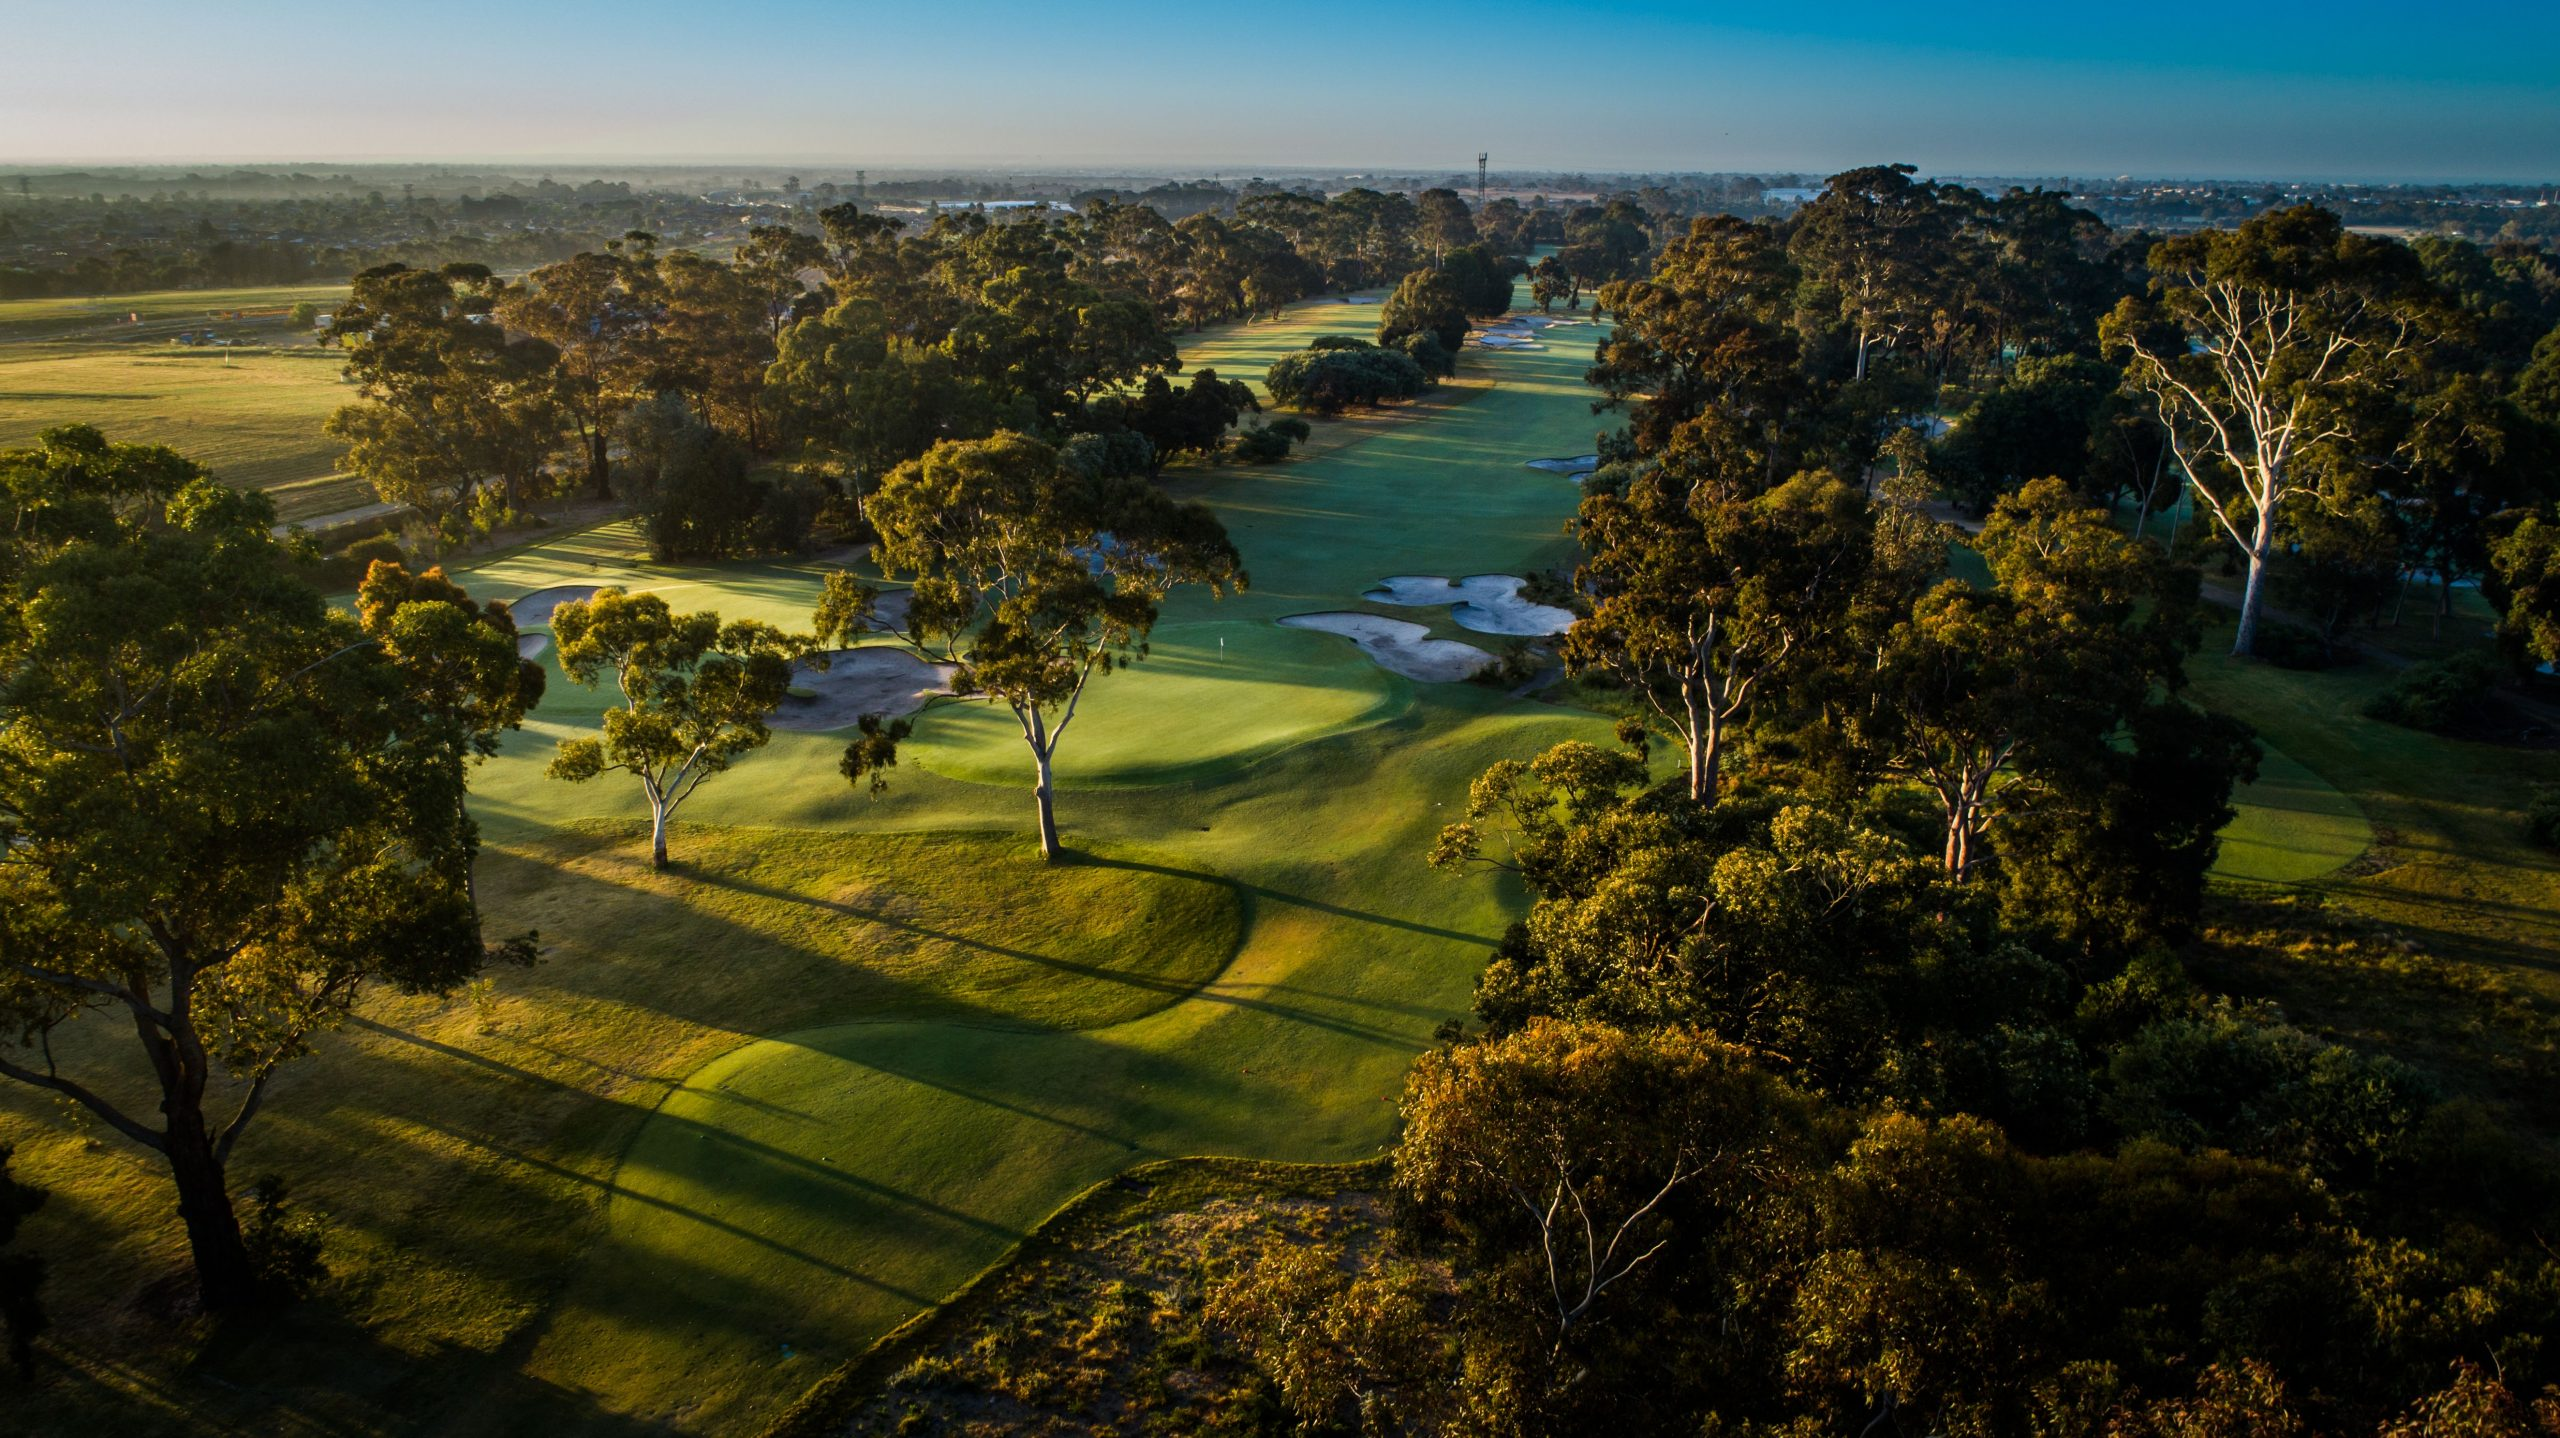 Commonwealth Golf Club regarding the appointment of a new Course Architect.